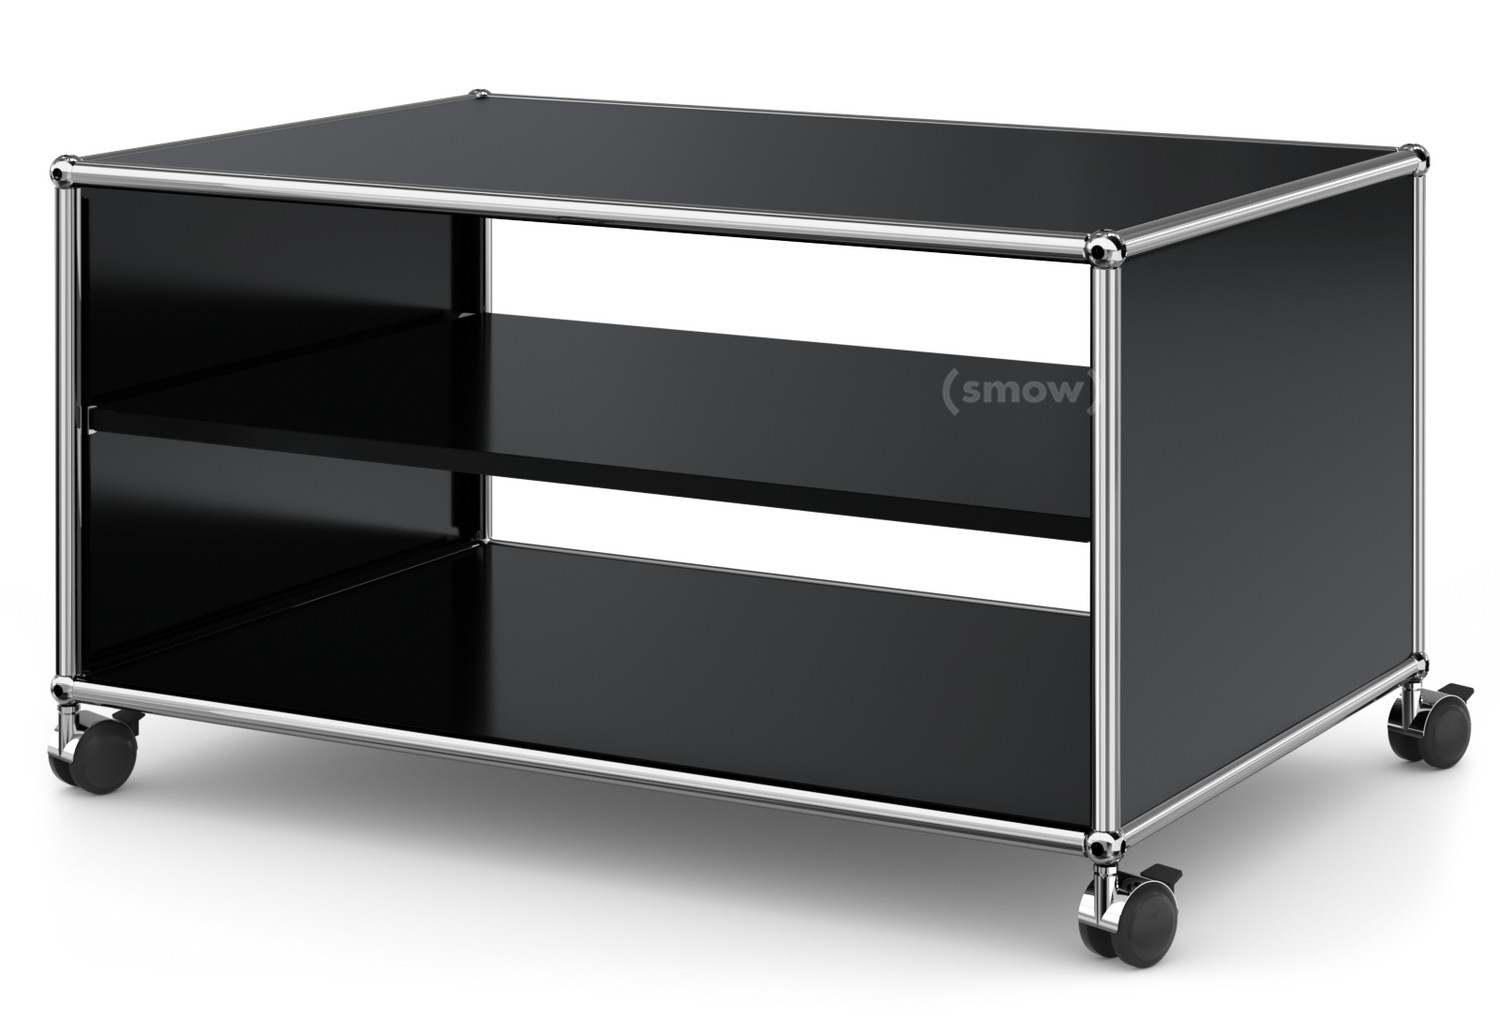 usm haller tv lowboard with castors by fritz haller paul. Black Bedroom Furniture Sets. Home Design Ideas